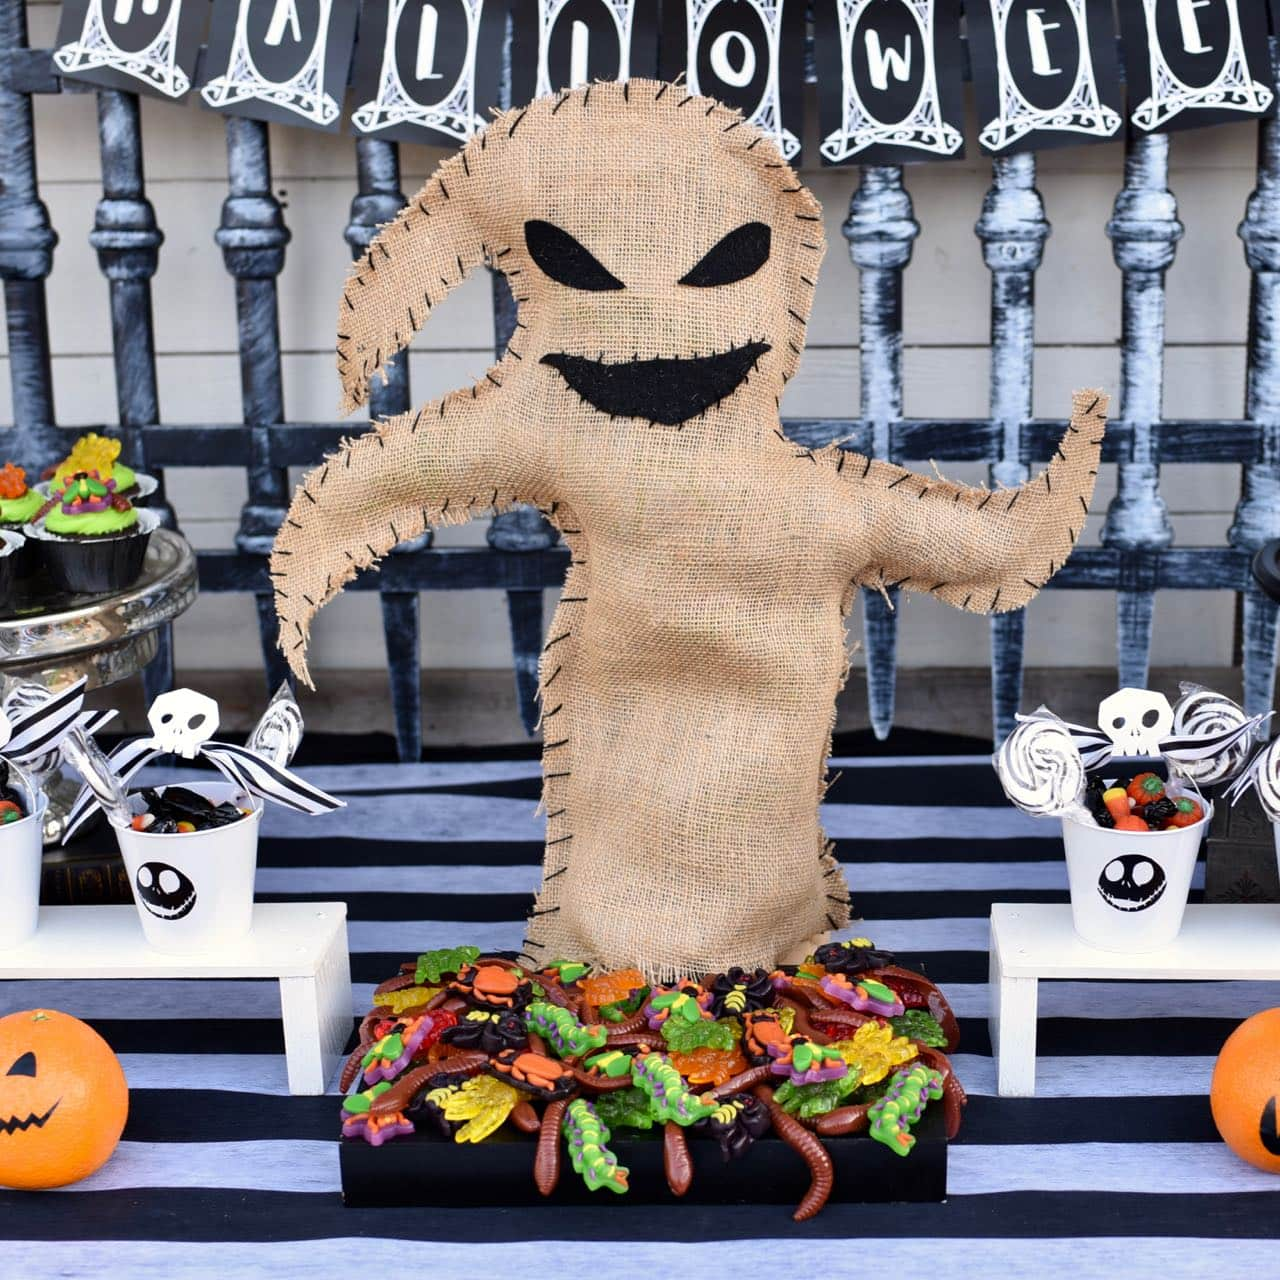 Nightmare Before Christmas Party That Will Make You Scream